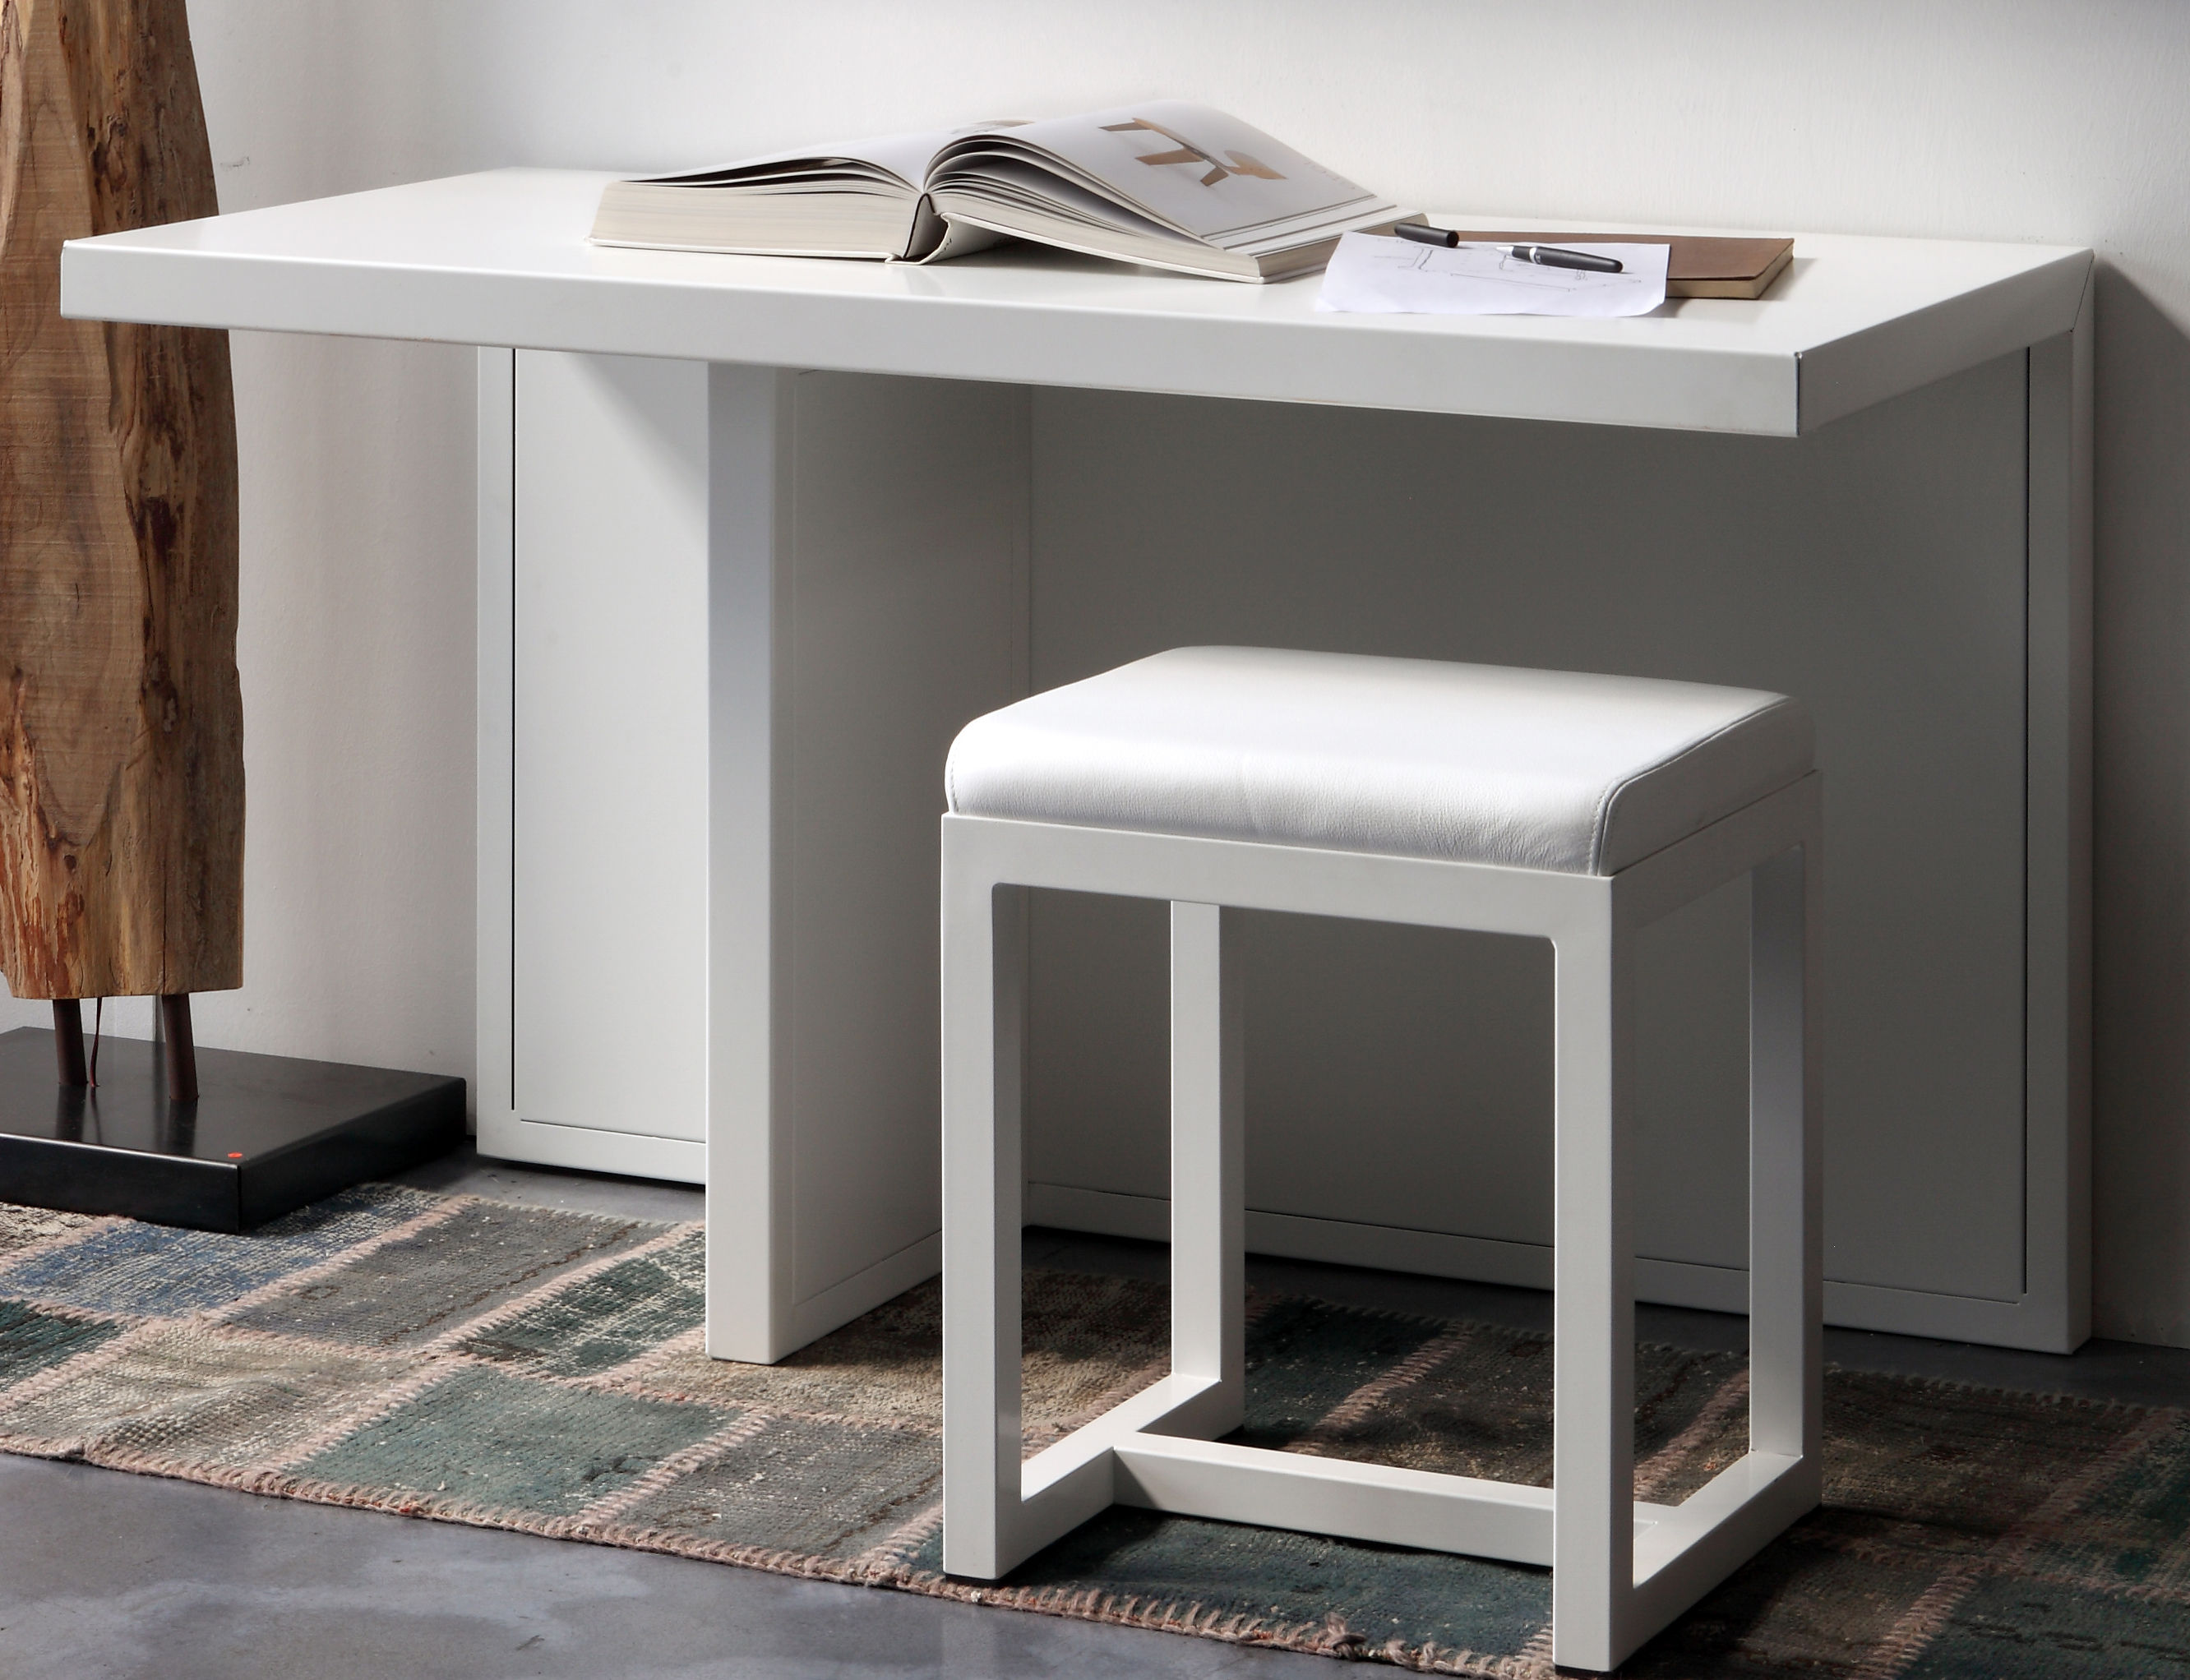 Furniture - Office Furniture - Atrium Console by Zeus - White - Painted steel